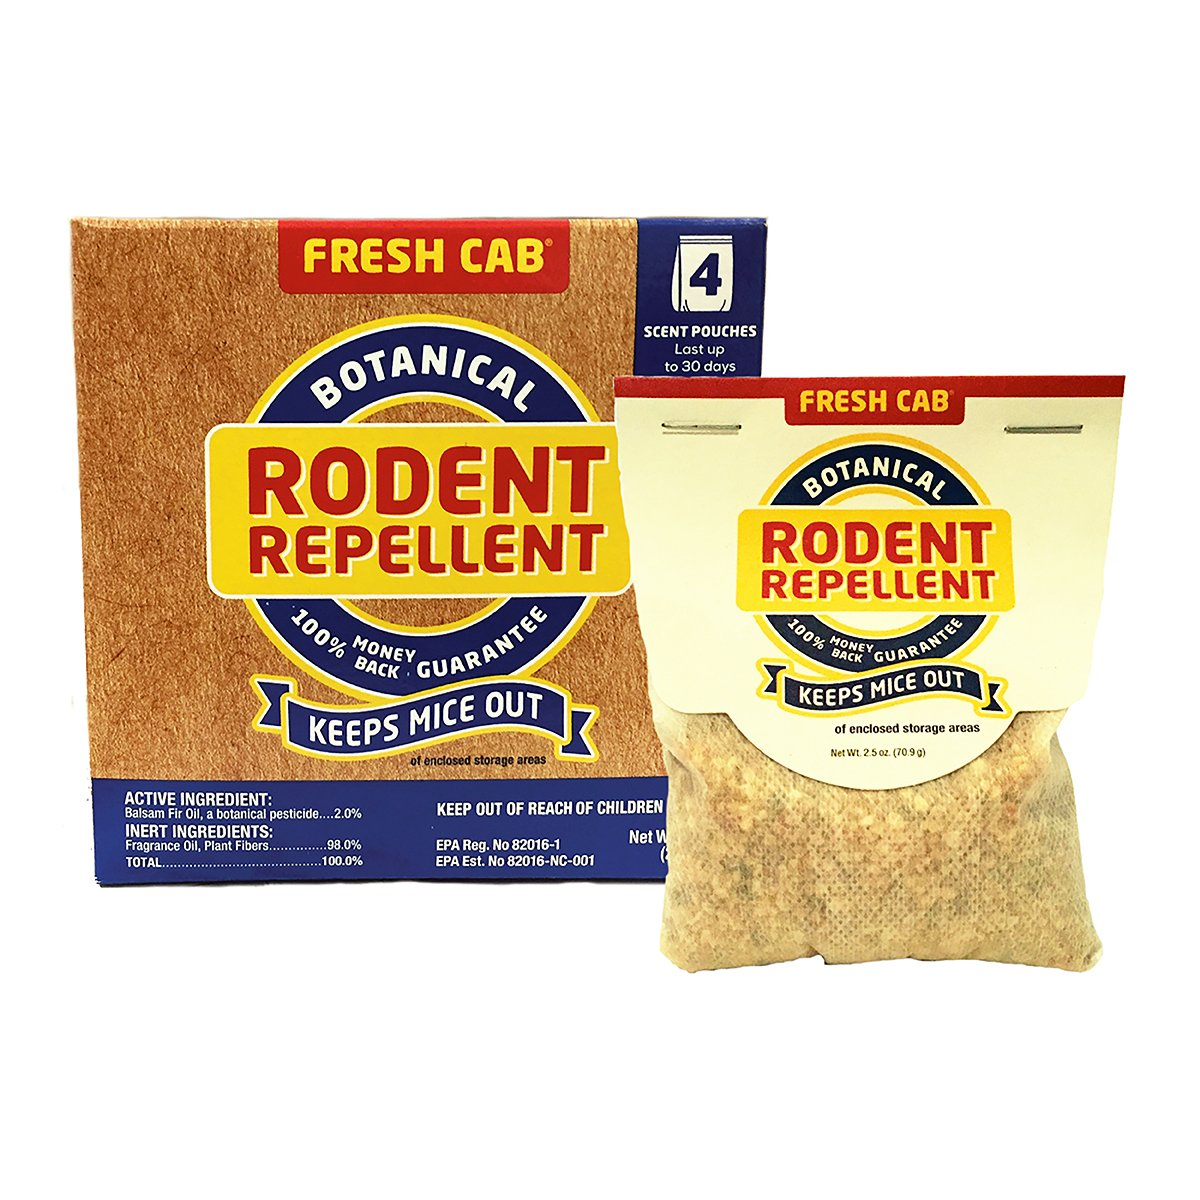 Earthkind Botanical Rodent Repellent, 4 Pouches - 125 Square Feet per Pouch by Fresh Cab